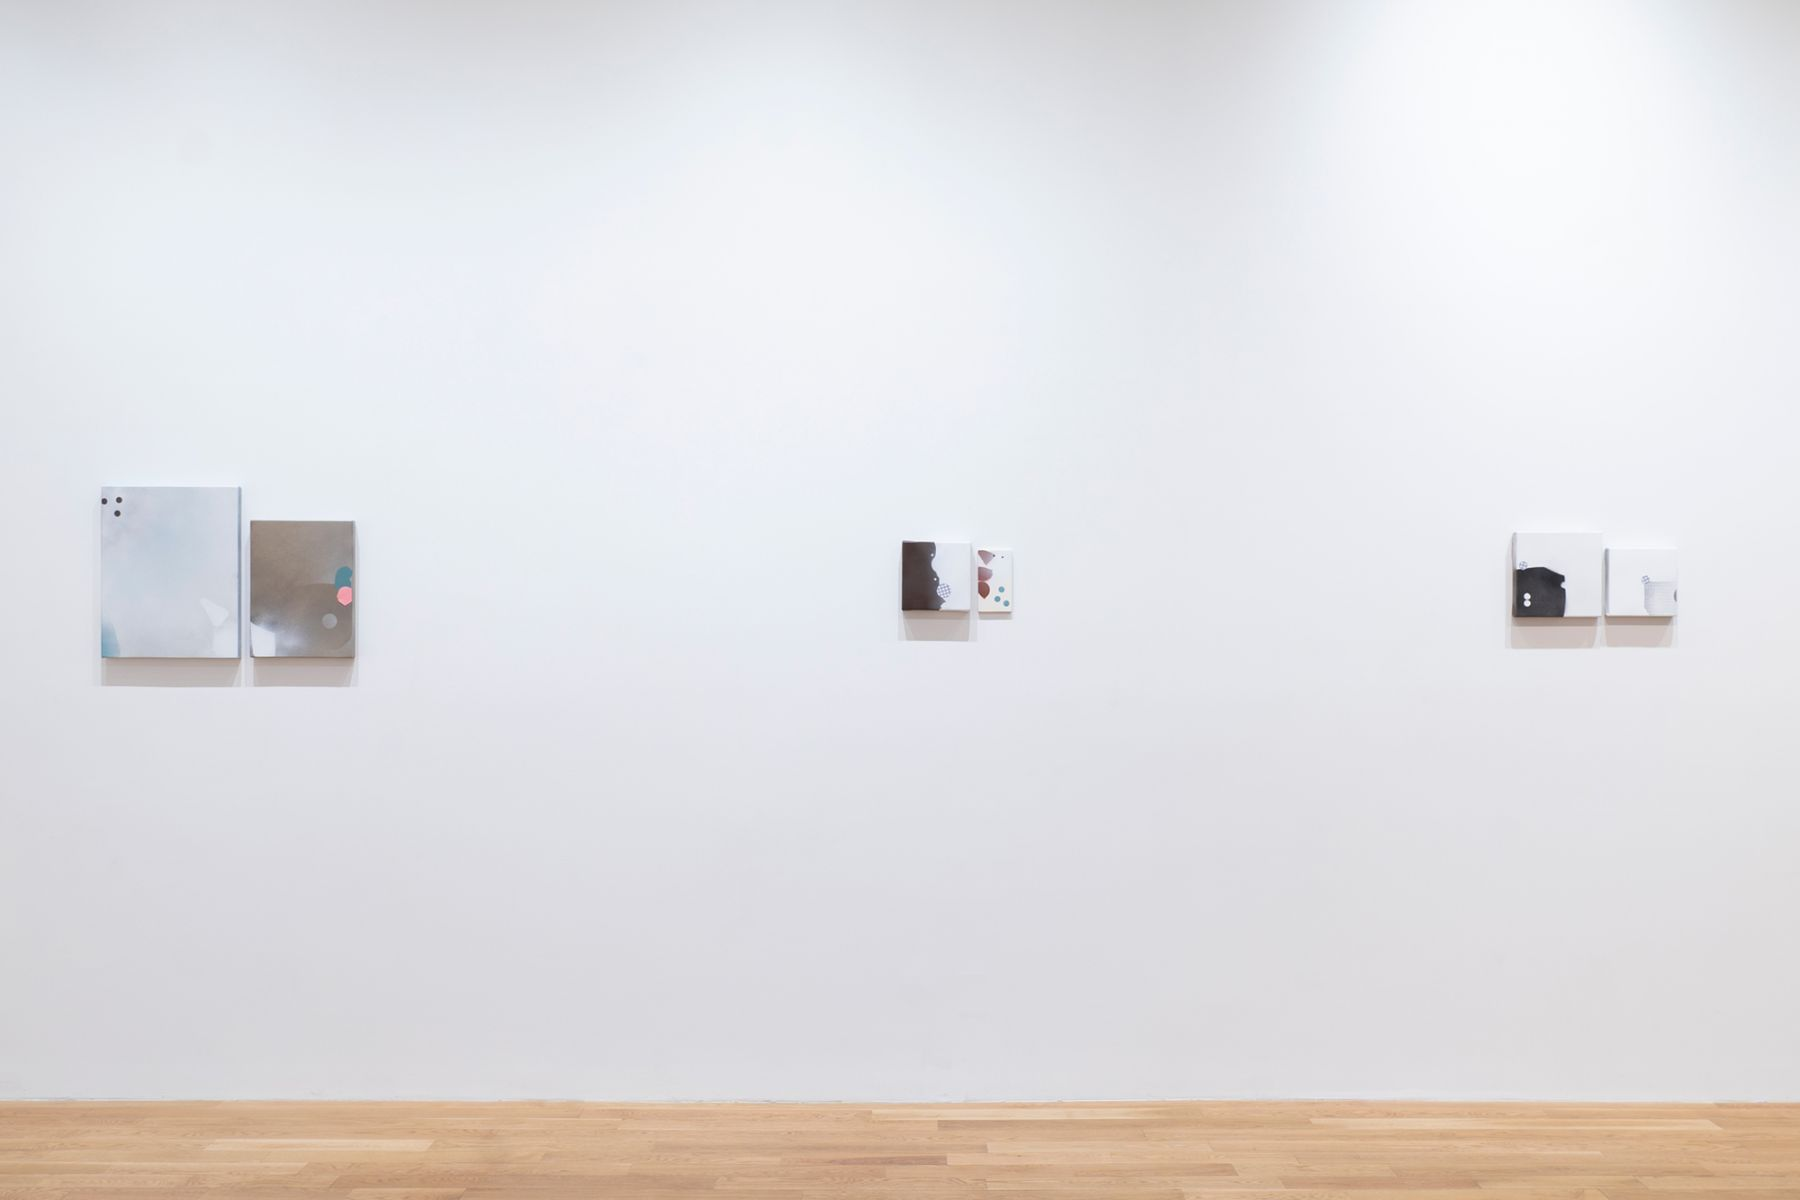 Installation view of George Negroponte: When Love Comes To Town at Anita Rogers Gallery